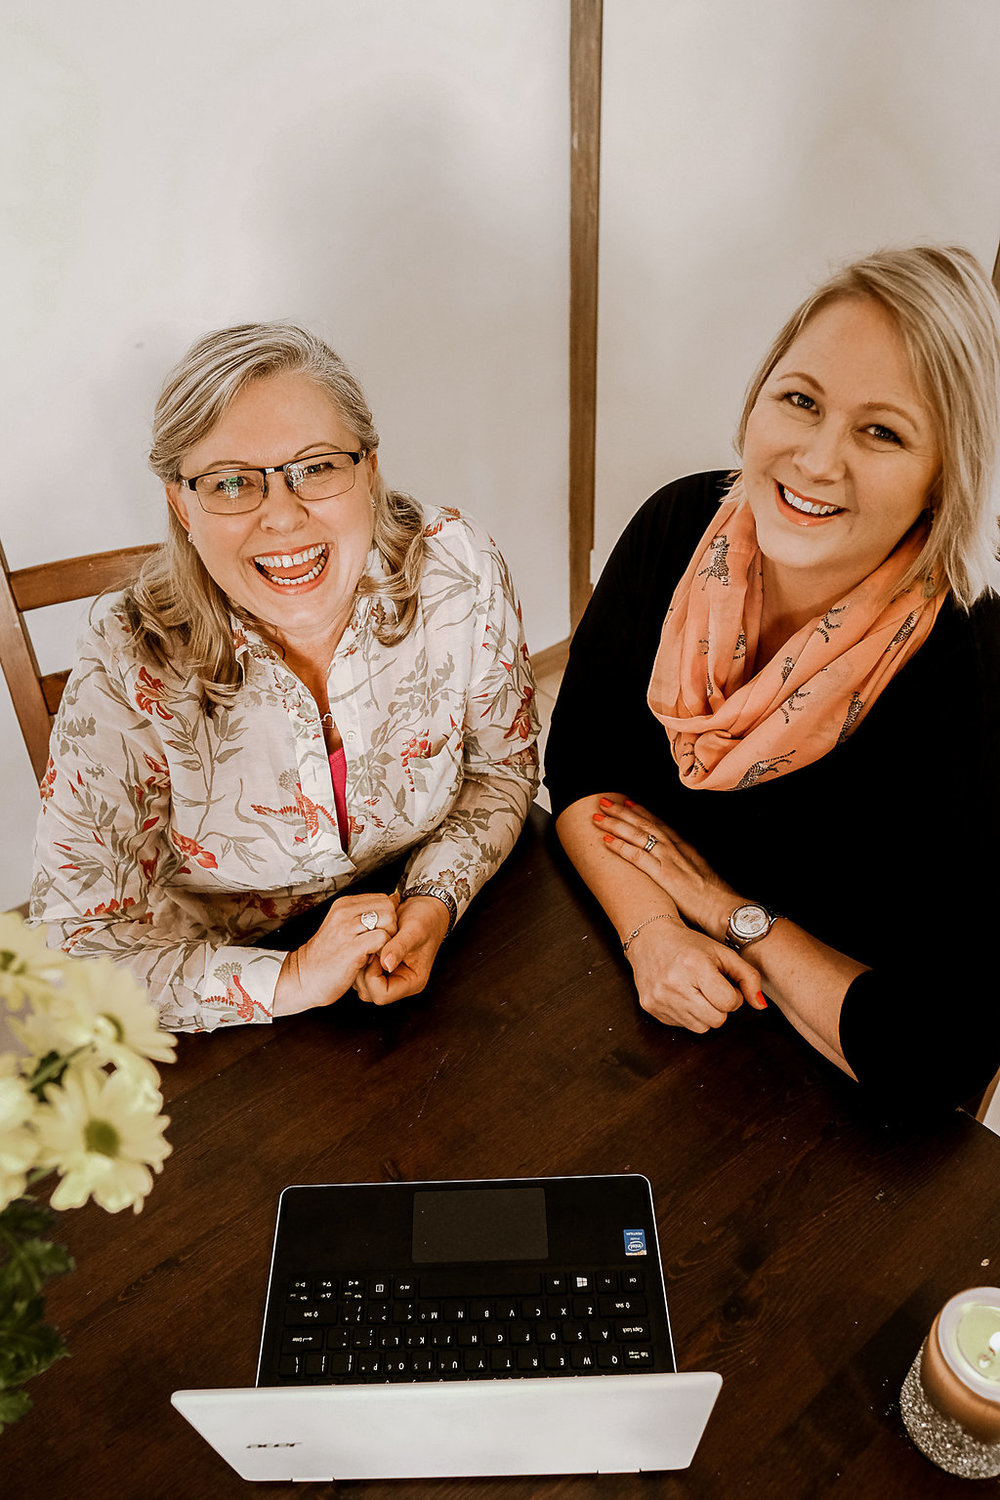 Claire & Bethany - Melbourne Childbirth Education - Prenatal Classes, Breastfeeding Support, VBAC Preparation and Support Partner Guidance